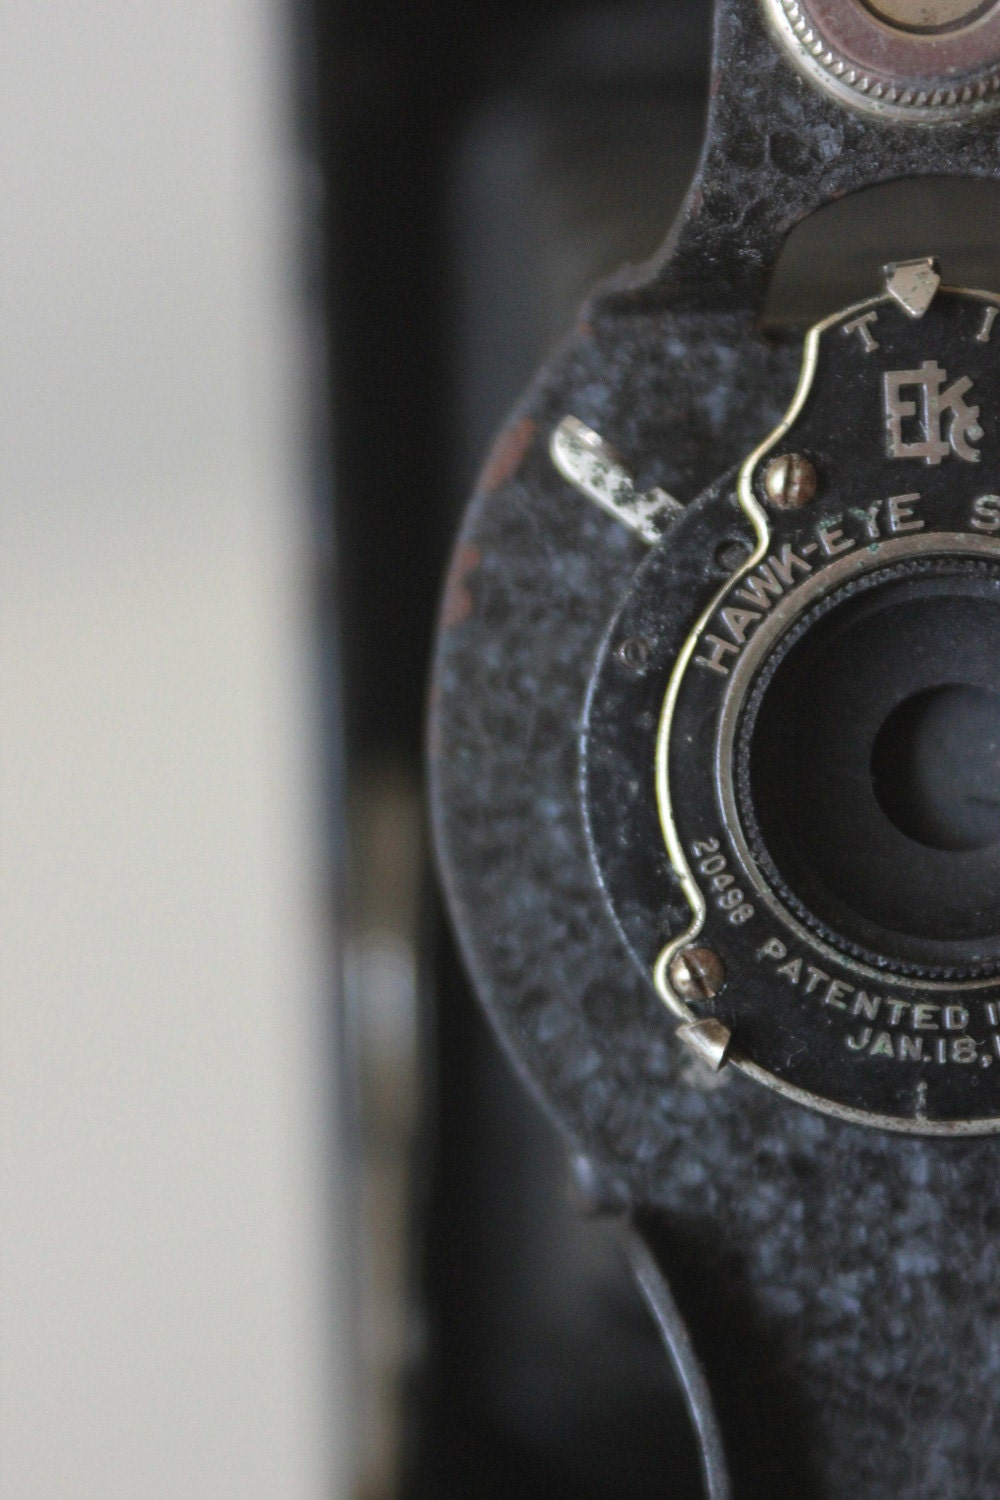 Vintage Kodak Camera, Hawk Eye Shutter from 1910 - TheVintageVogueStory